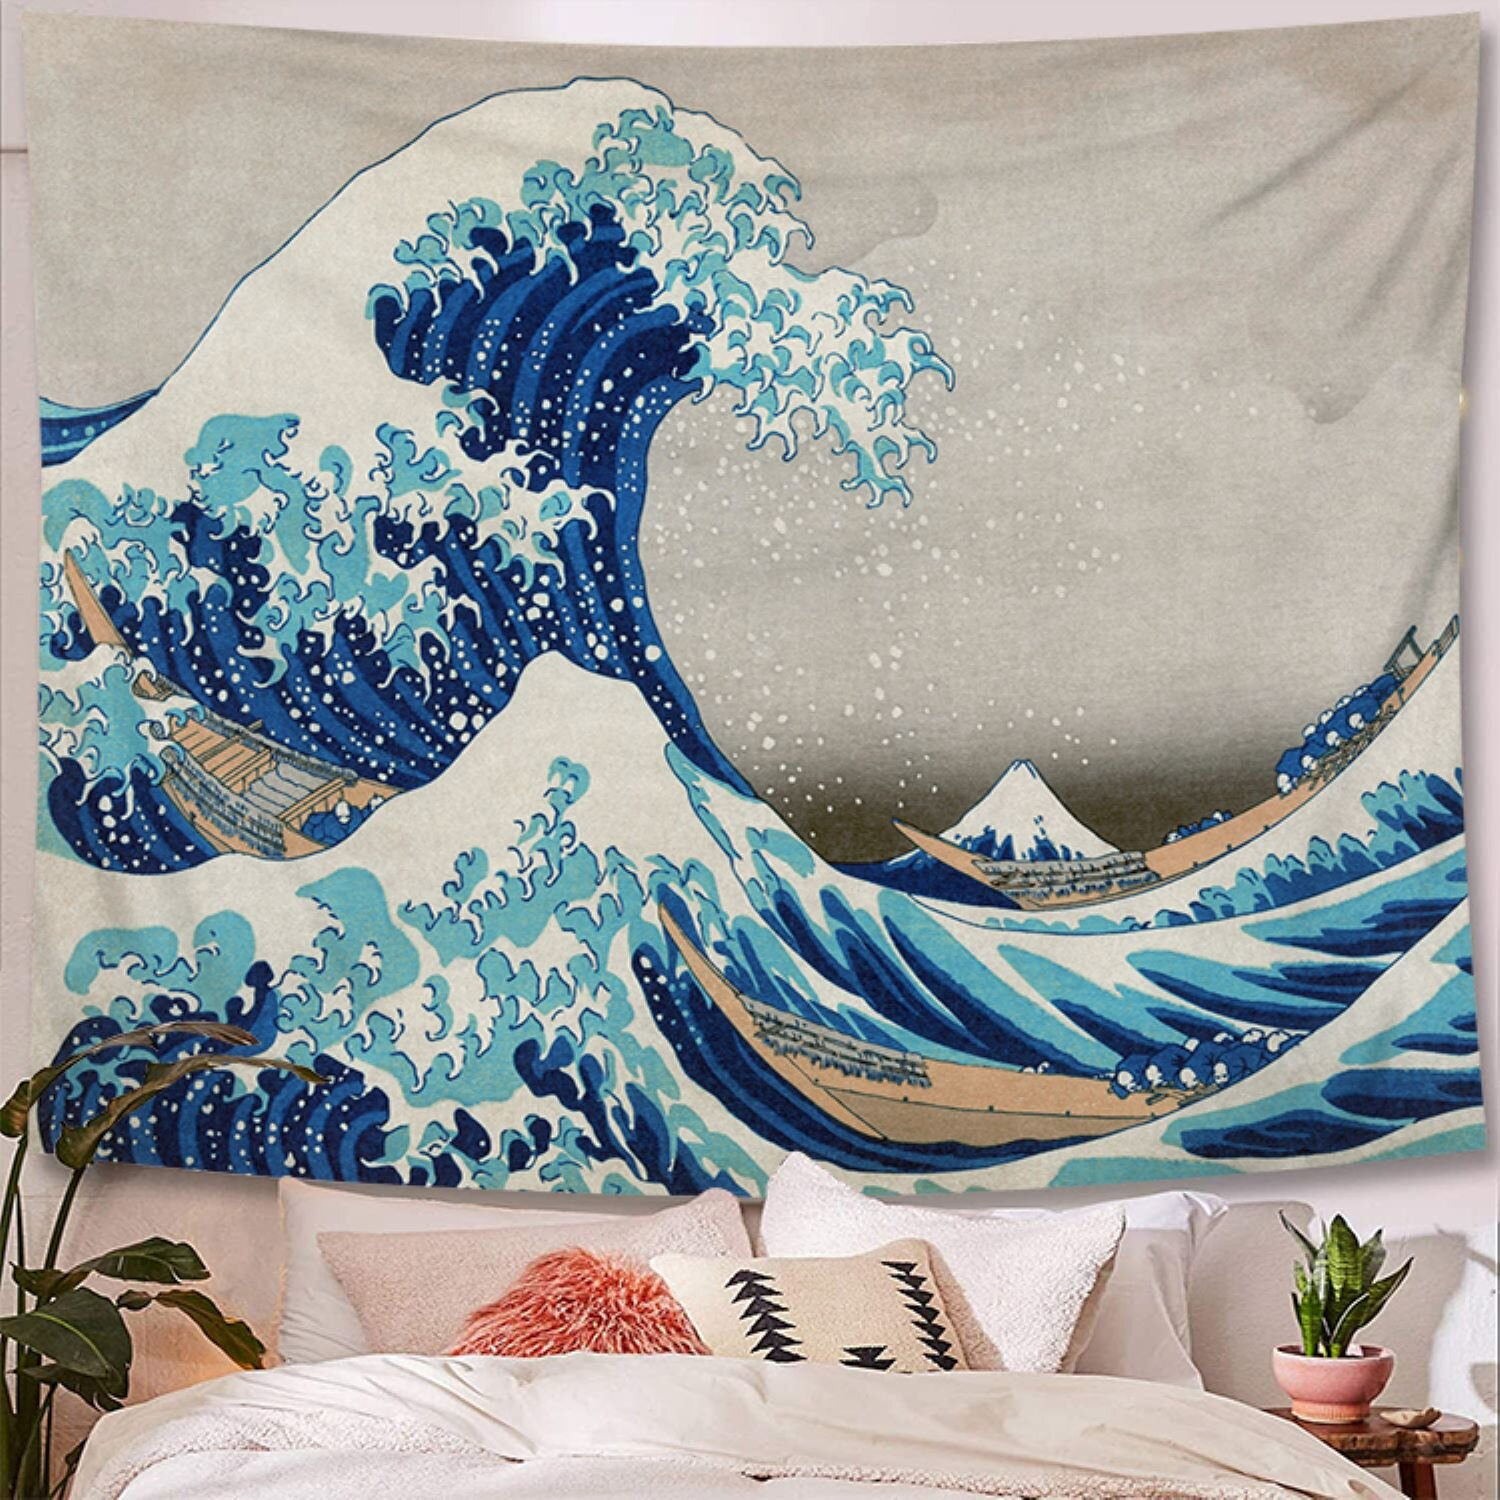 Arabic Art Tapestries You'll Love In 2021 | Wayfair Inside Most Current Blended Fabric Breeze Of Admiration Woven Tapestries (View 16 of 20)